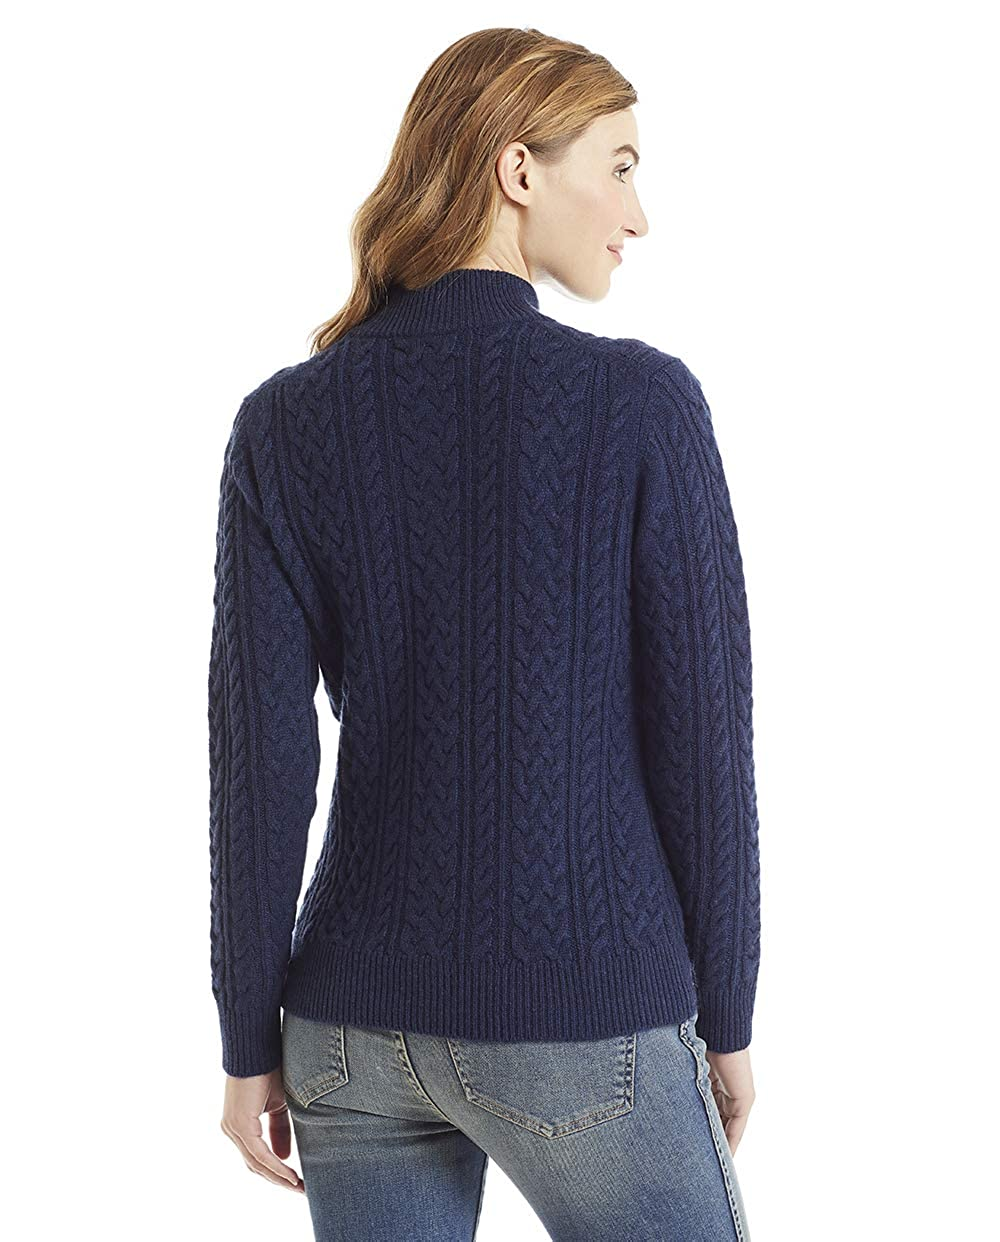 Invisible World Womens 100/% Cashmere Sweater Cable Knit Cardigan Katy